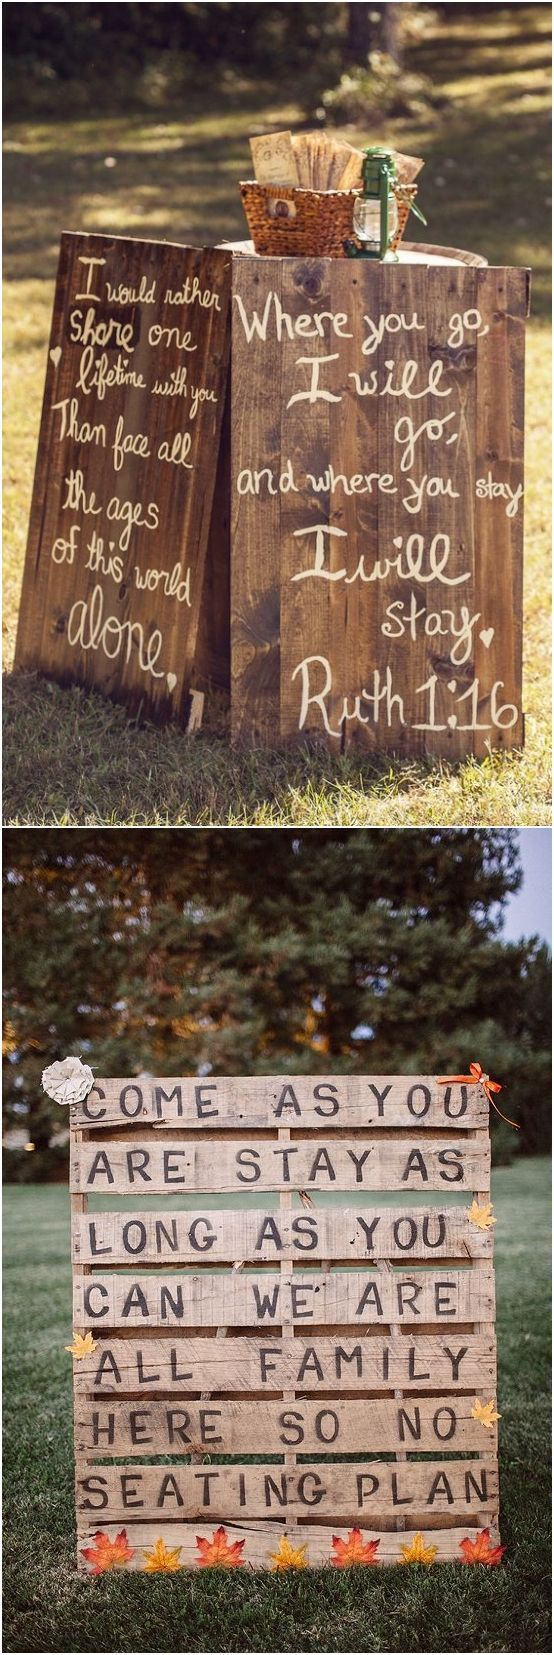 Wedding decorations using pallets october 2018  of the Best Fall Wedding Ideas for   Pinterest  Weddings